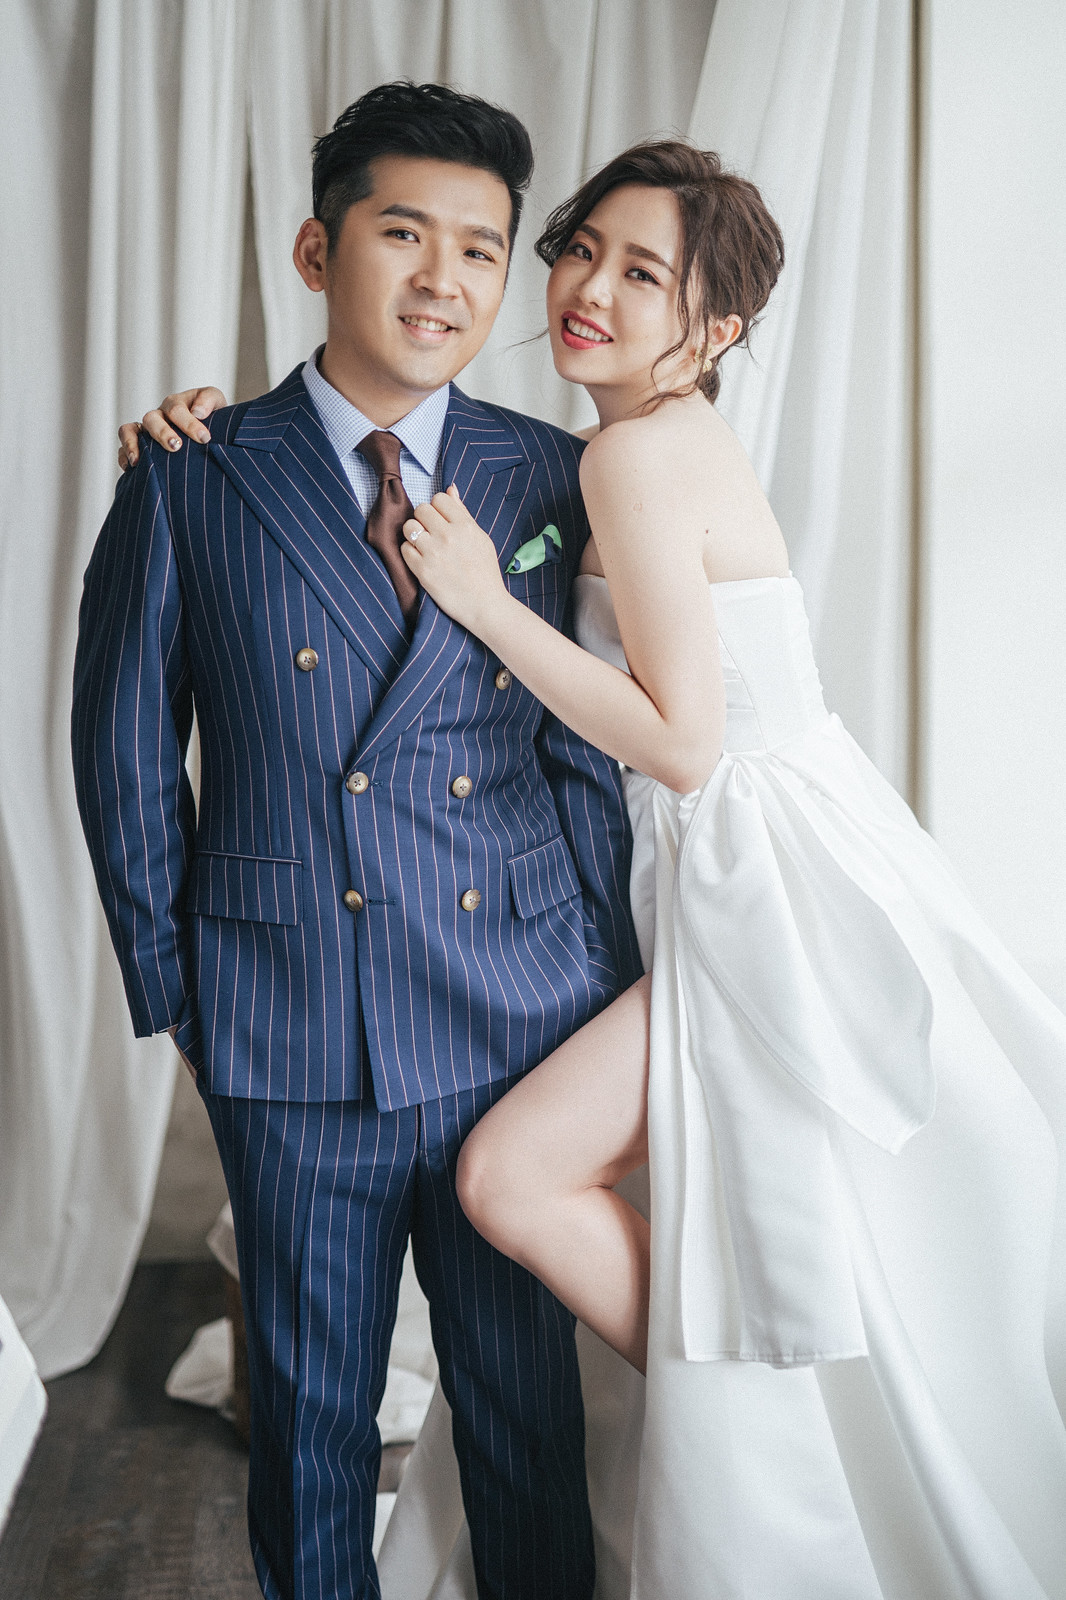 【婚紗】Jimmy & Ula / 婚紗意象 / EASTERN WEDDING studio